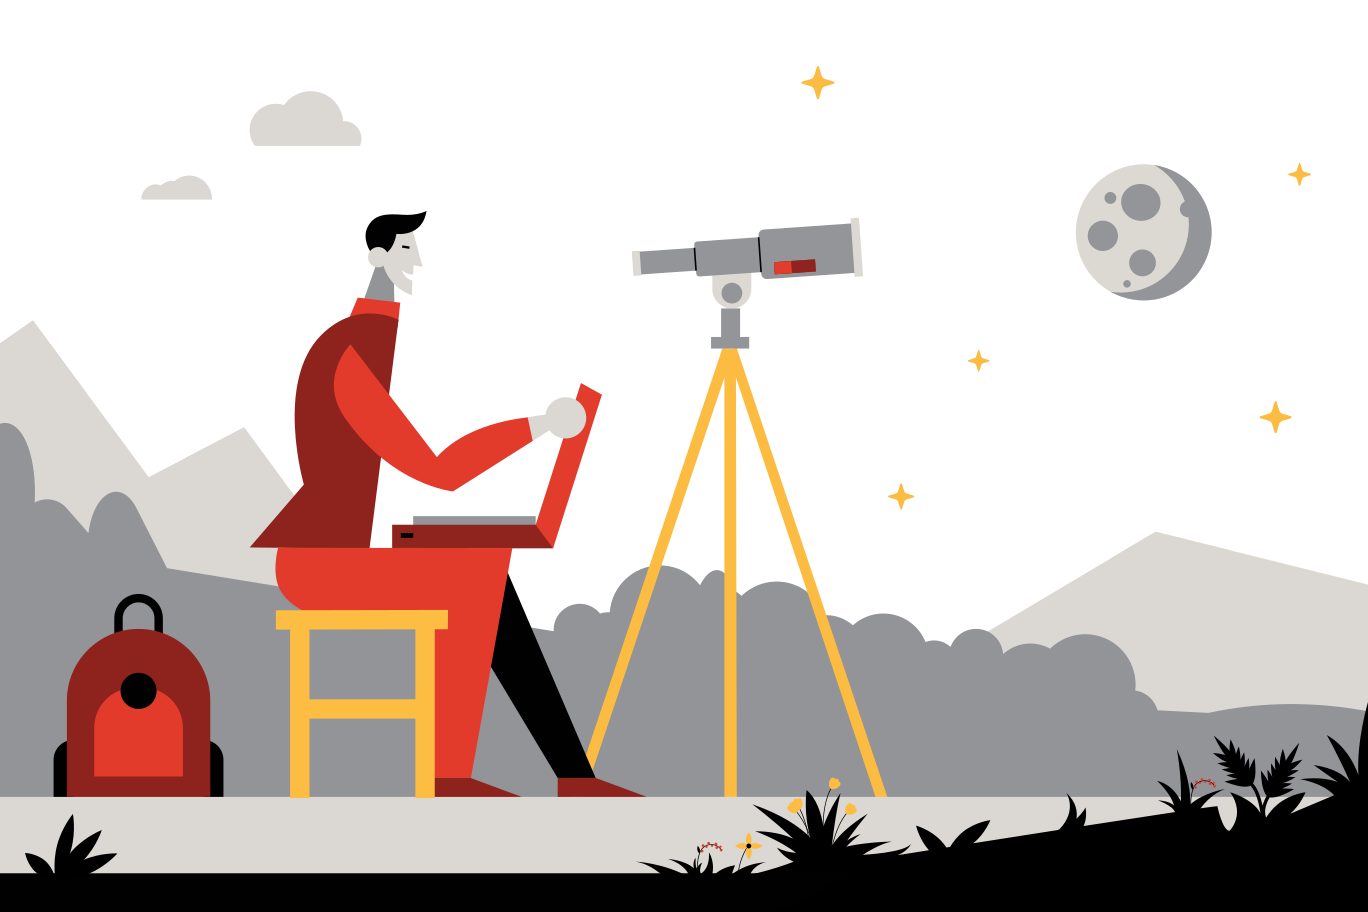 style Exploring the moon Vector images in PNG and SVG | Icons8 Illustrations